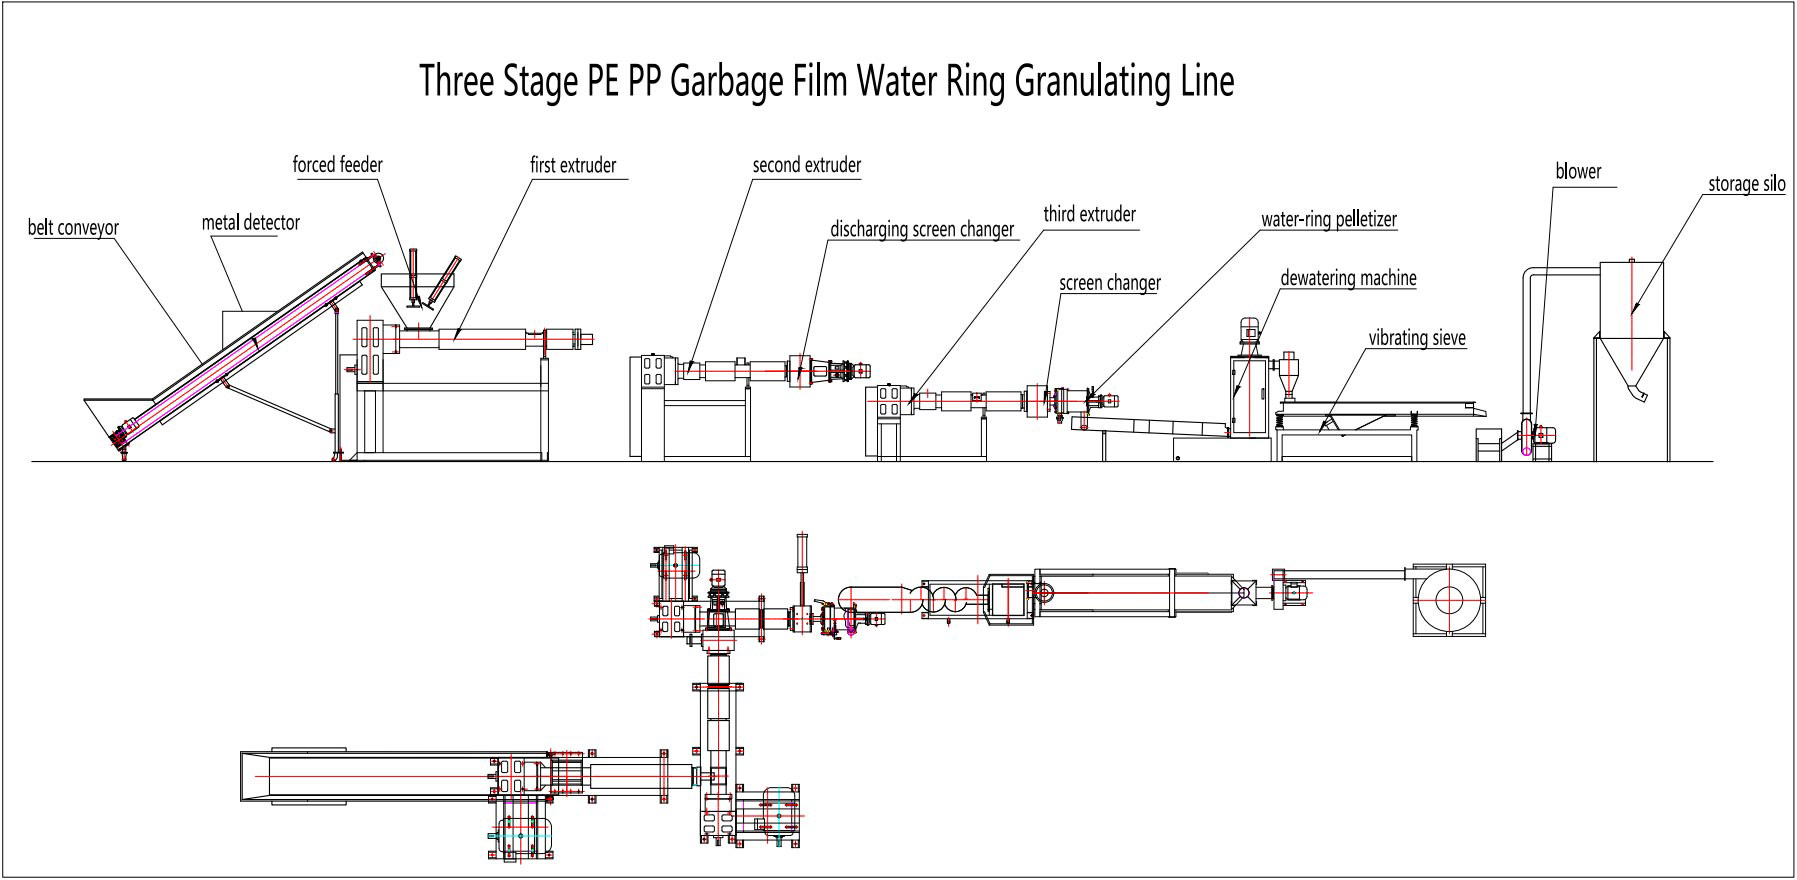 Three Stage ABS Water-ring Granulating Line